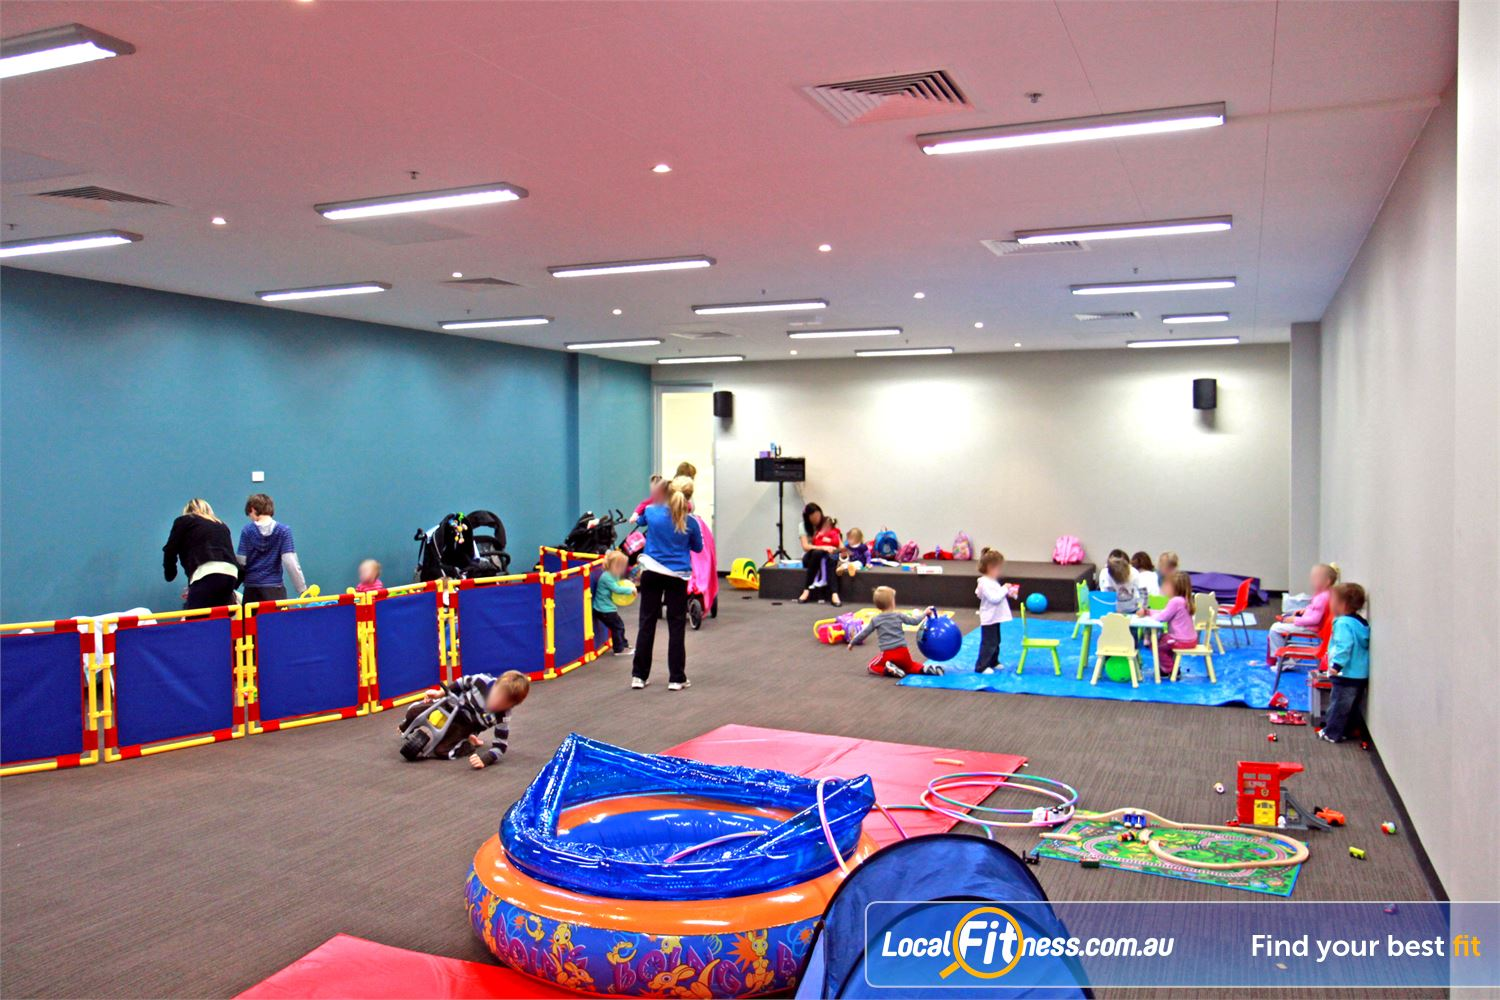 Goodlife Health Clubs Near Reedy Creek Life is busy, so Goodlife Robina provides a play area for your children.